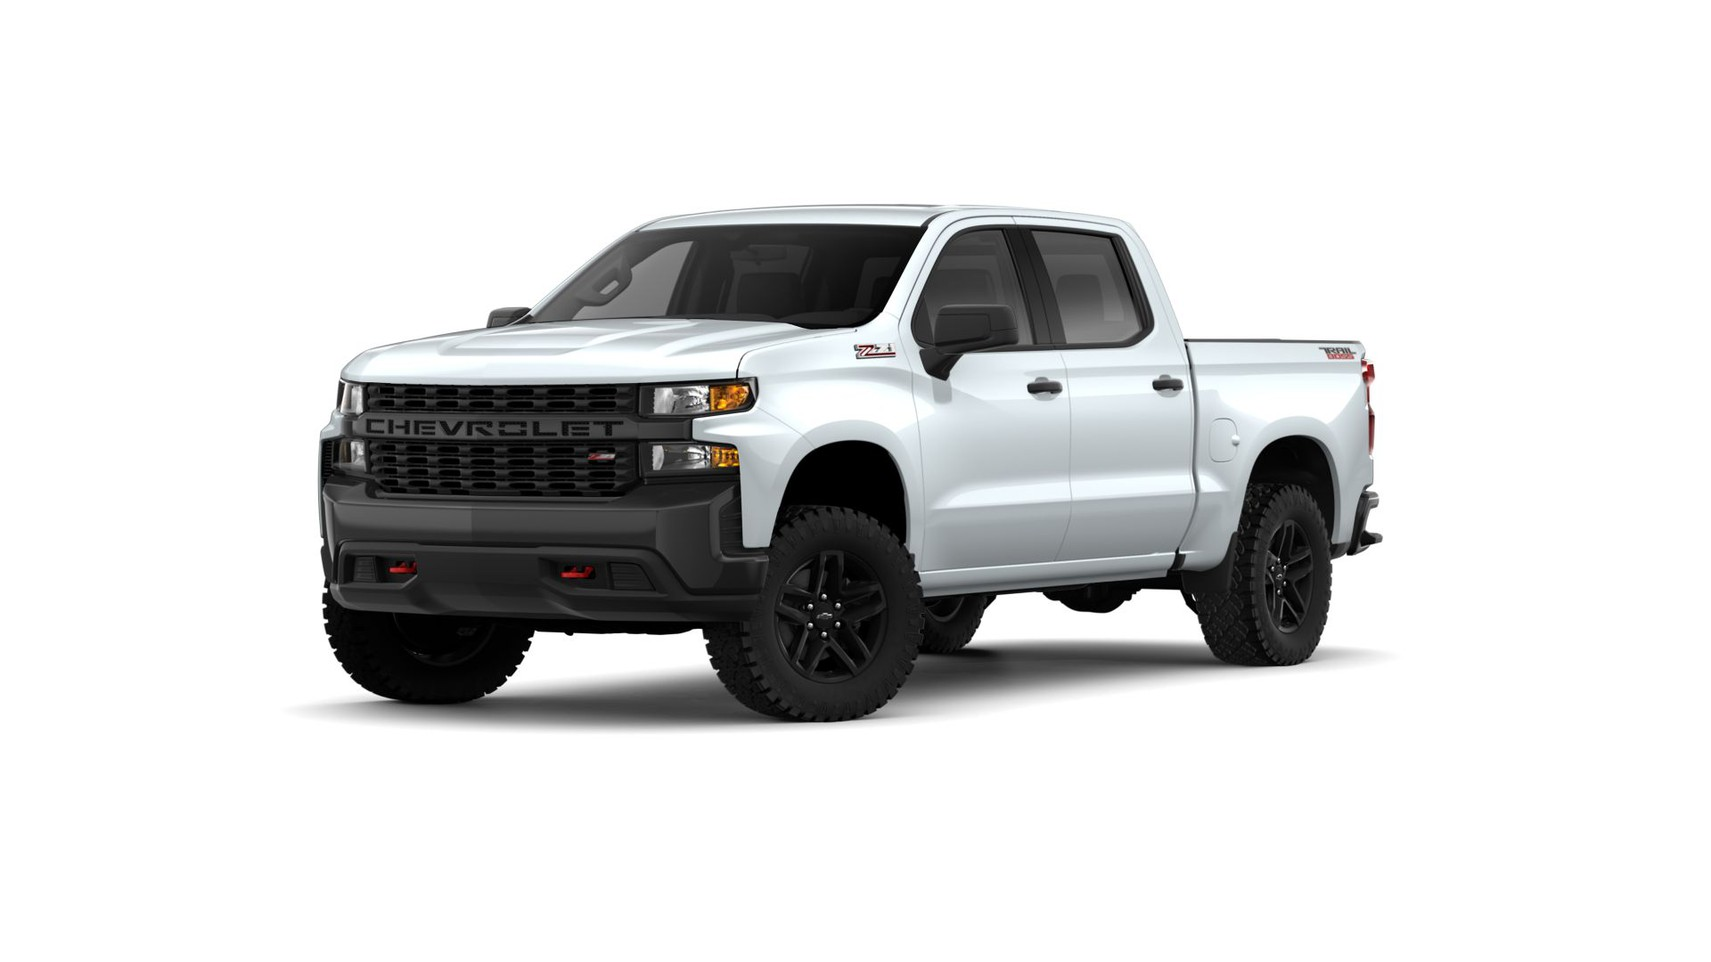 Chevrolet Silverado 1500 2019 Custom Trail Boss